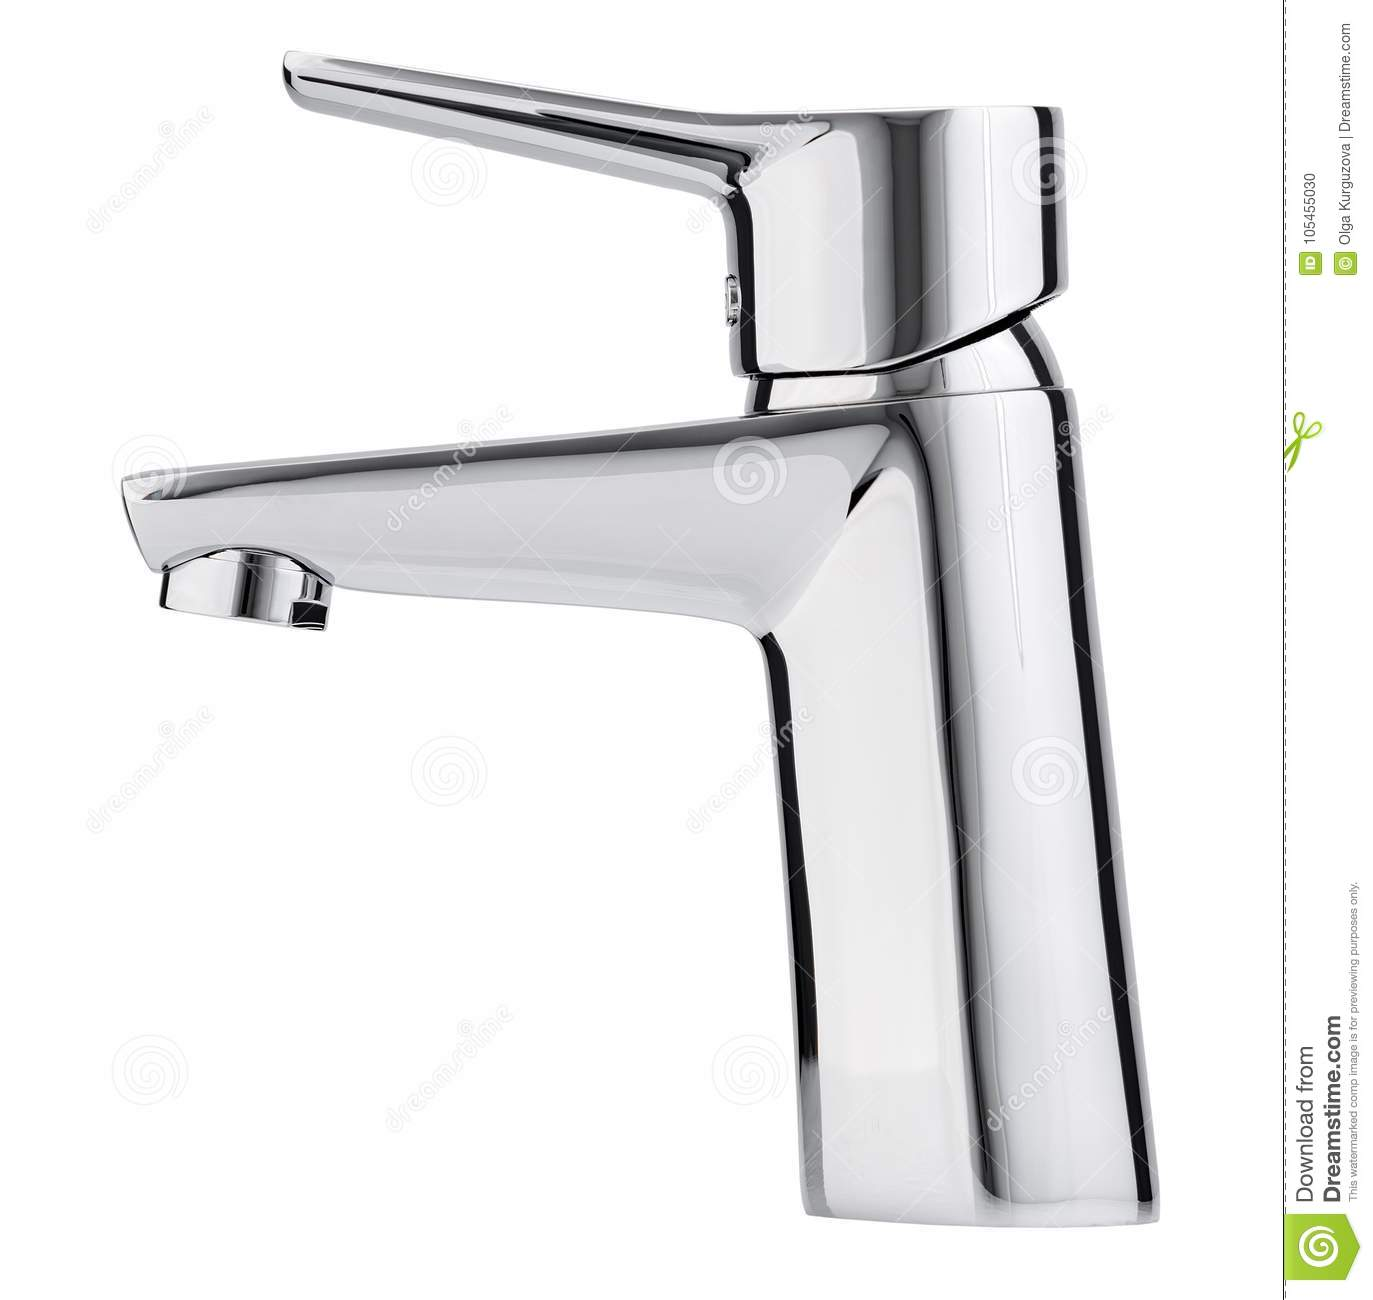 buy a out necessities faucets faucet choose the pull primary to kitchen yliving purist best design blog ae from how kohleryliving modern